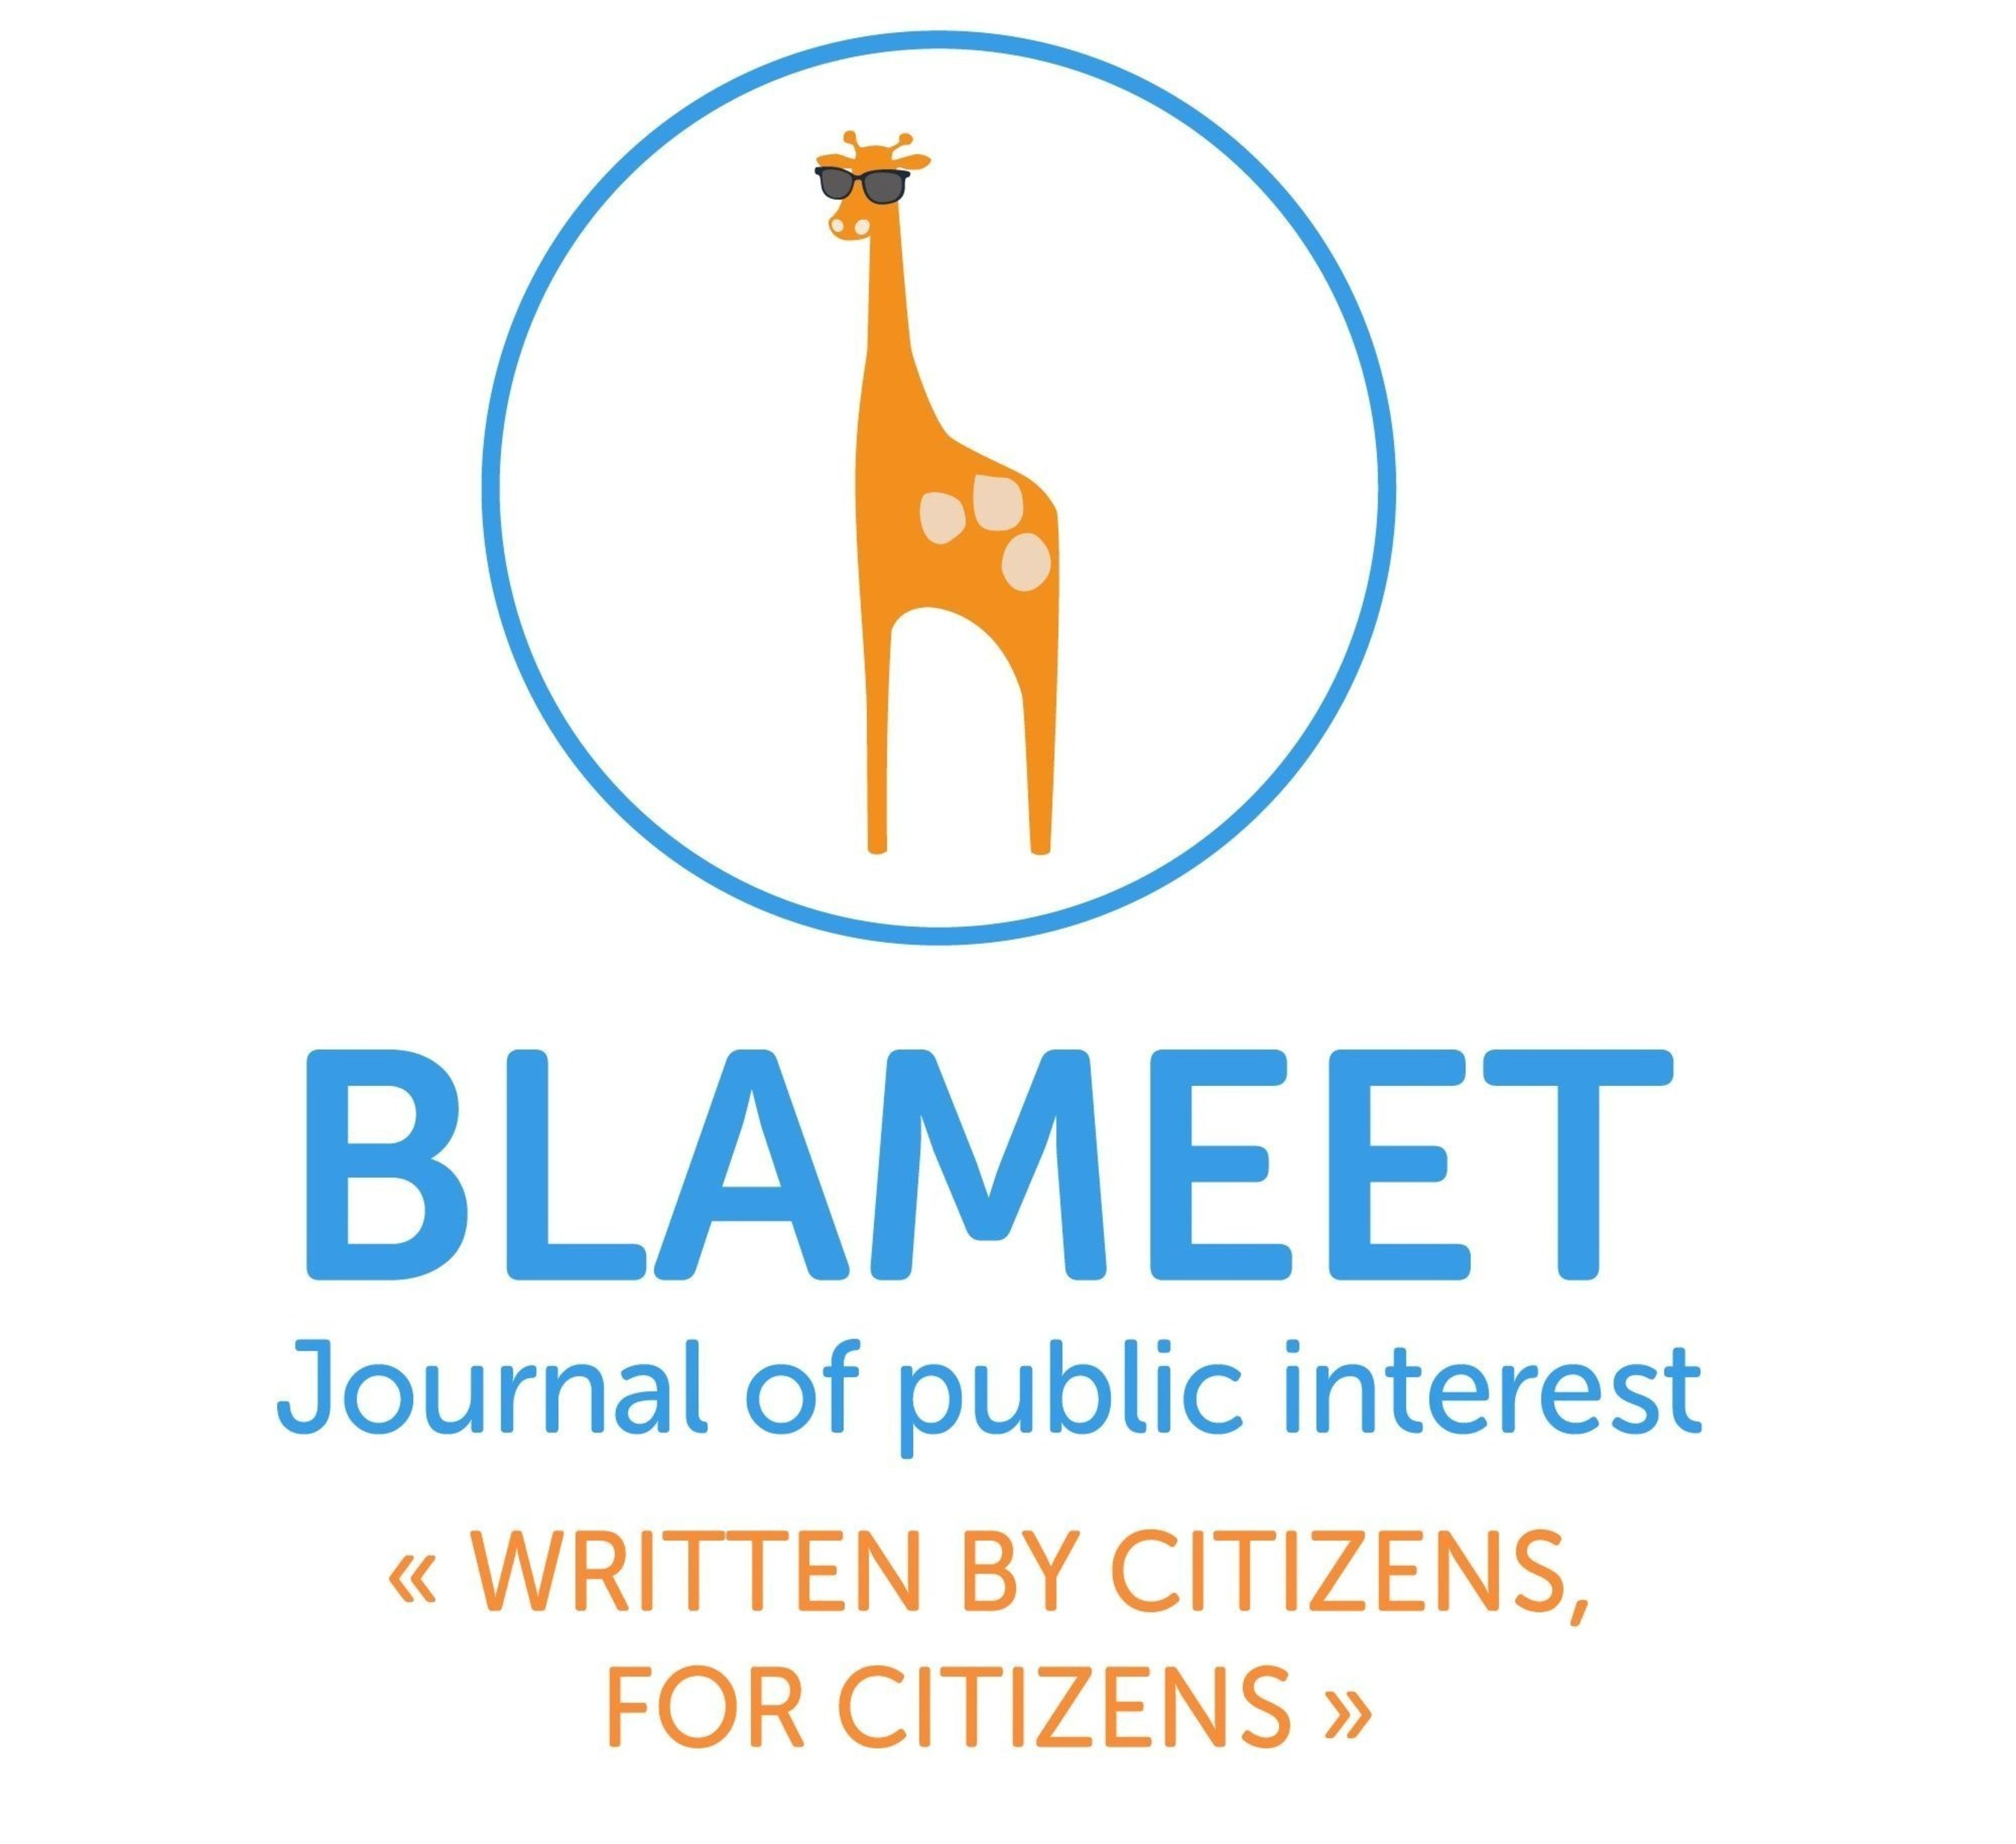 BLAMEET Launches its UBER for Journalists/Freelancers